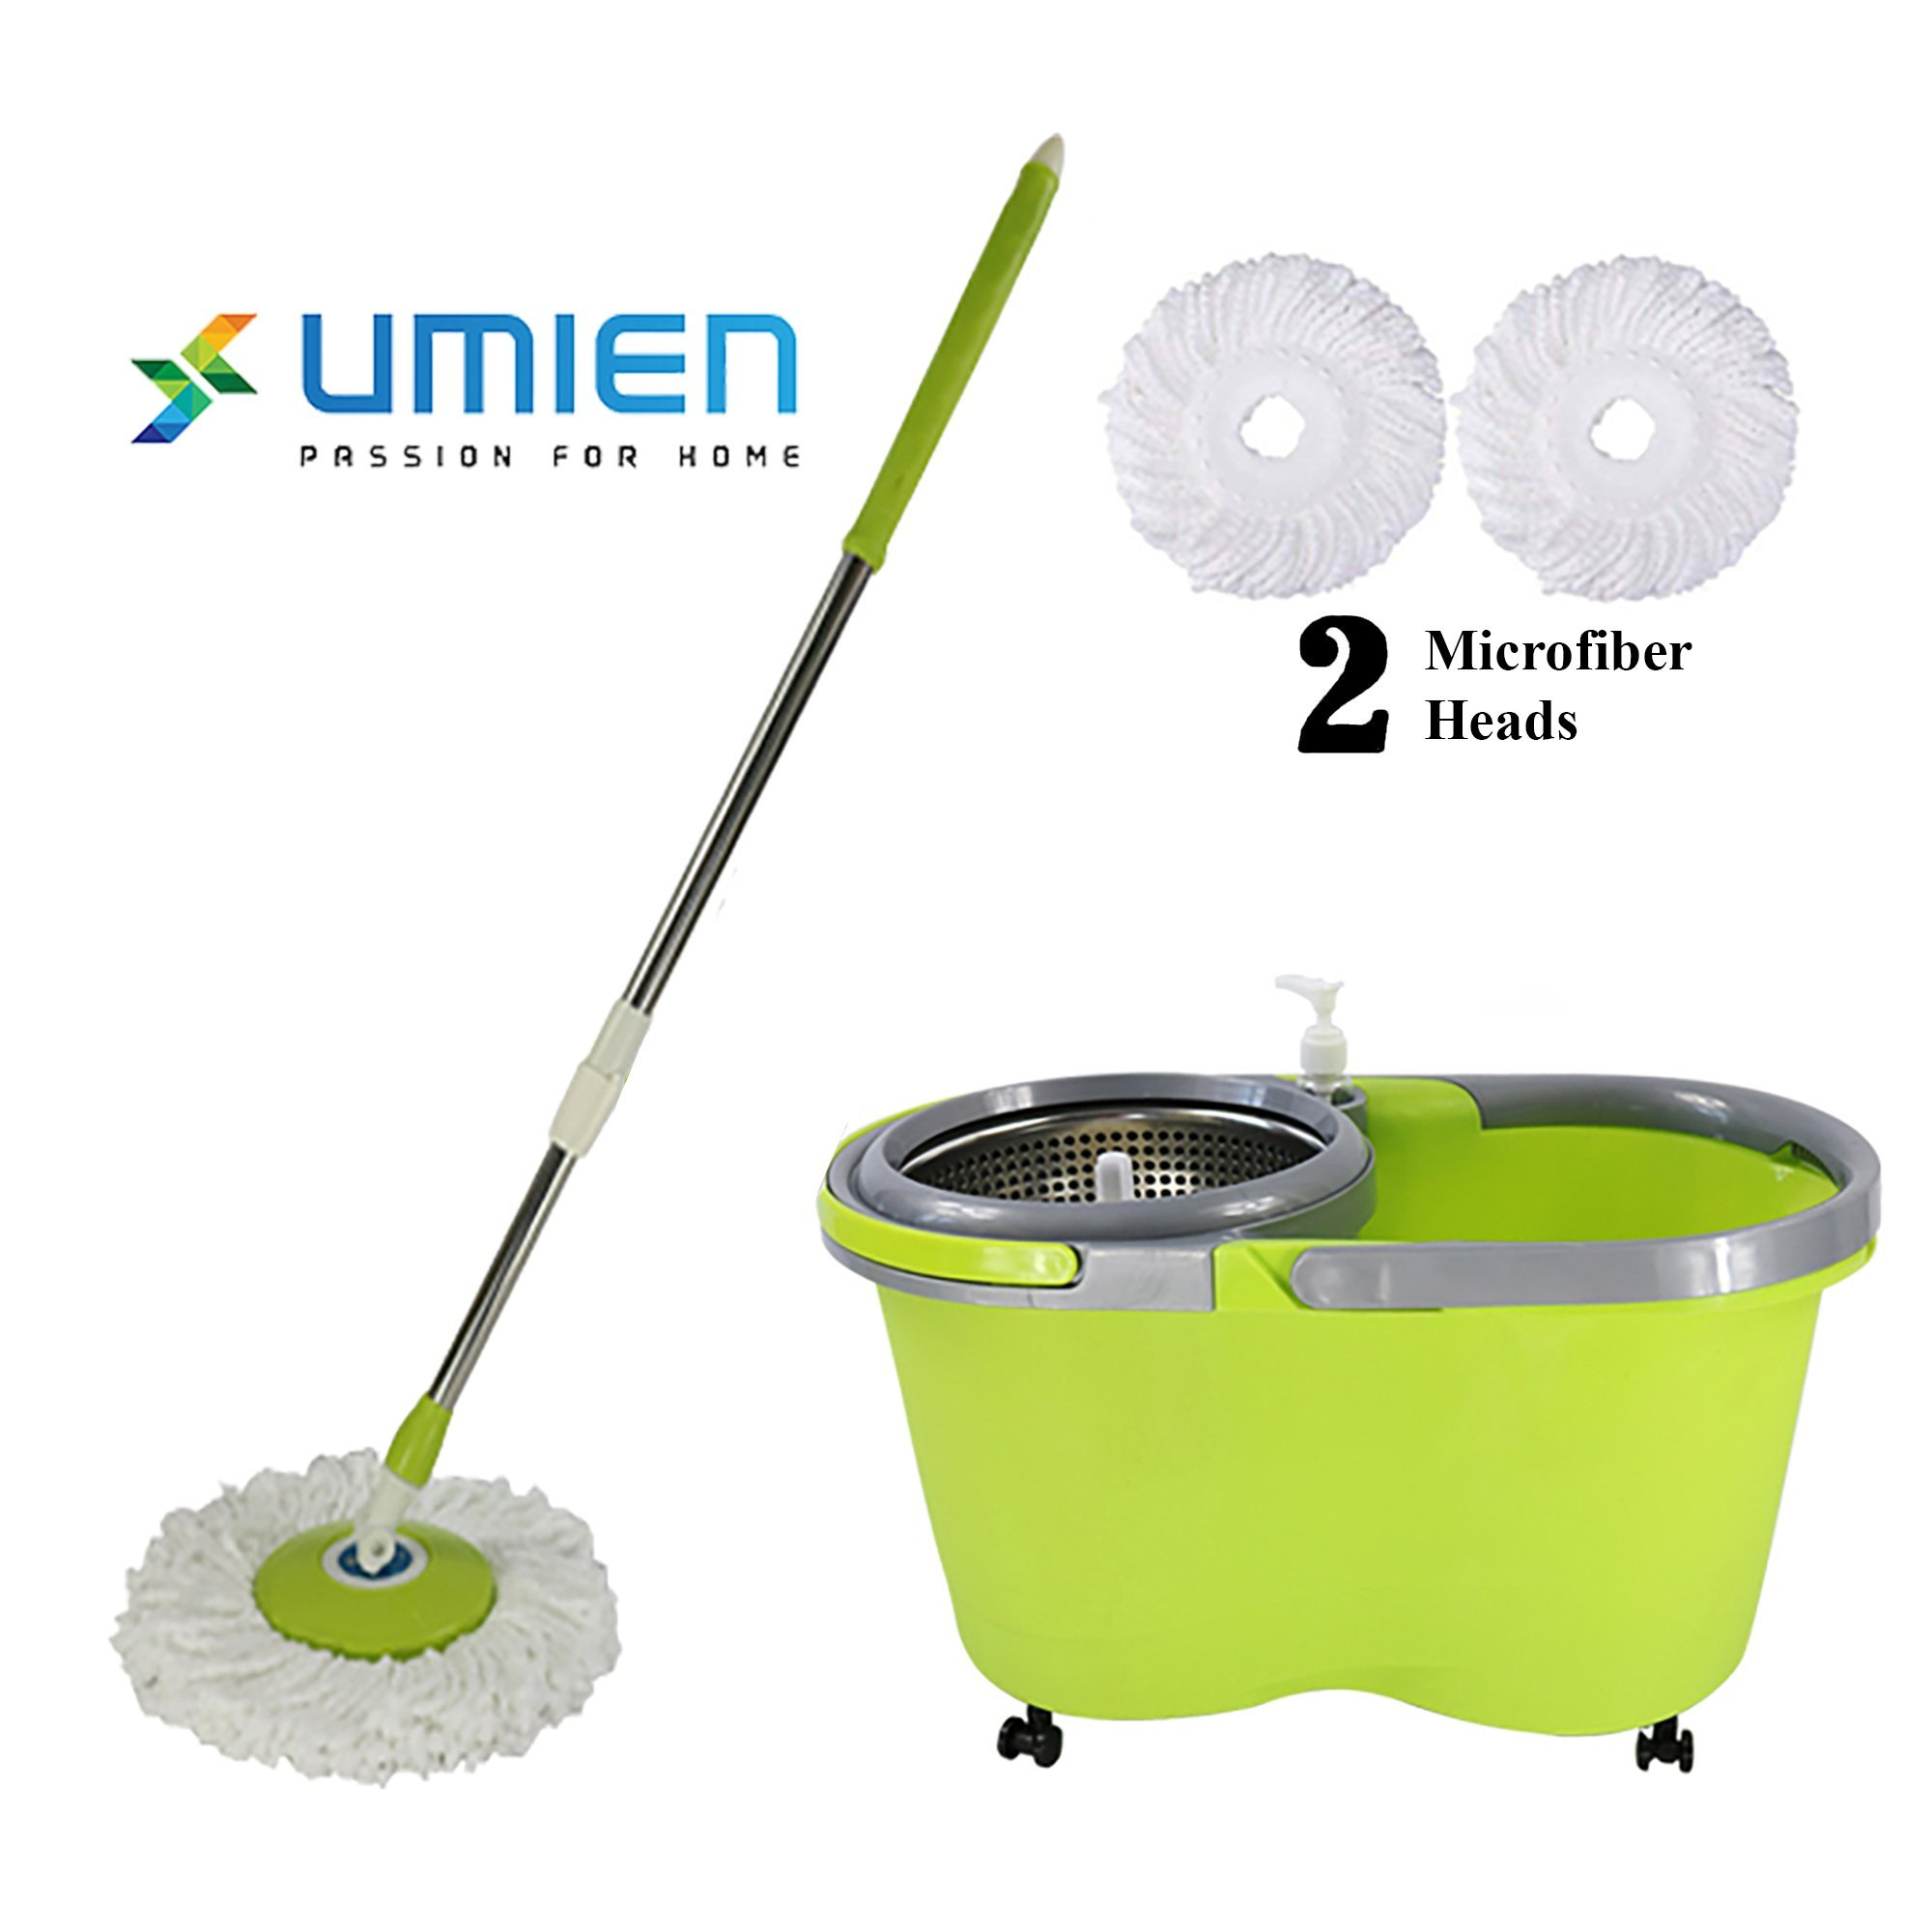 Self Wringing mop system – 360° degree spin swivel mop with bucket on wheels and 2 machine washable microfiber quick dry mop heads for ease of use